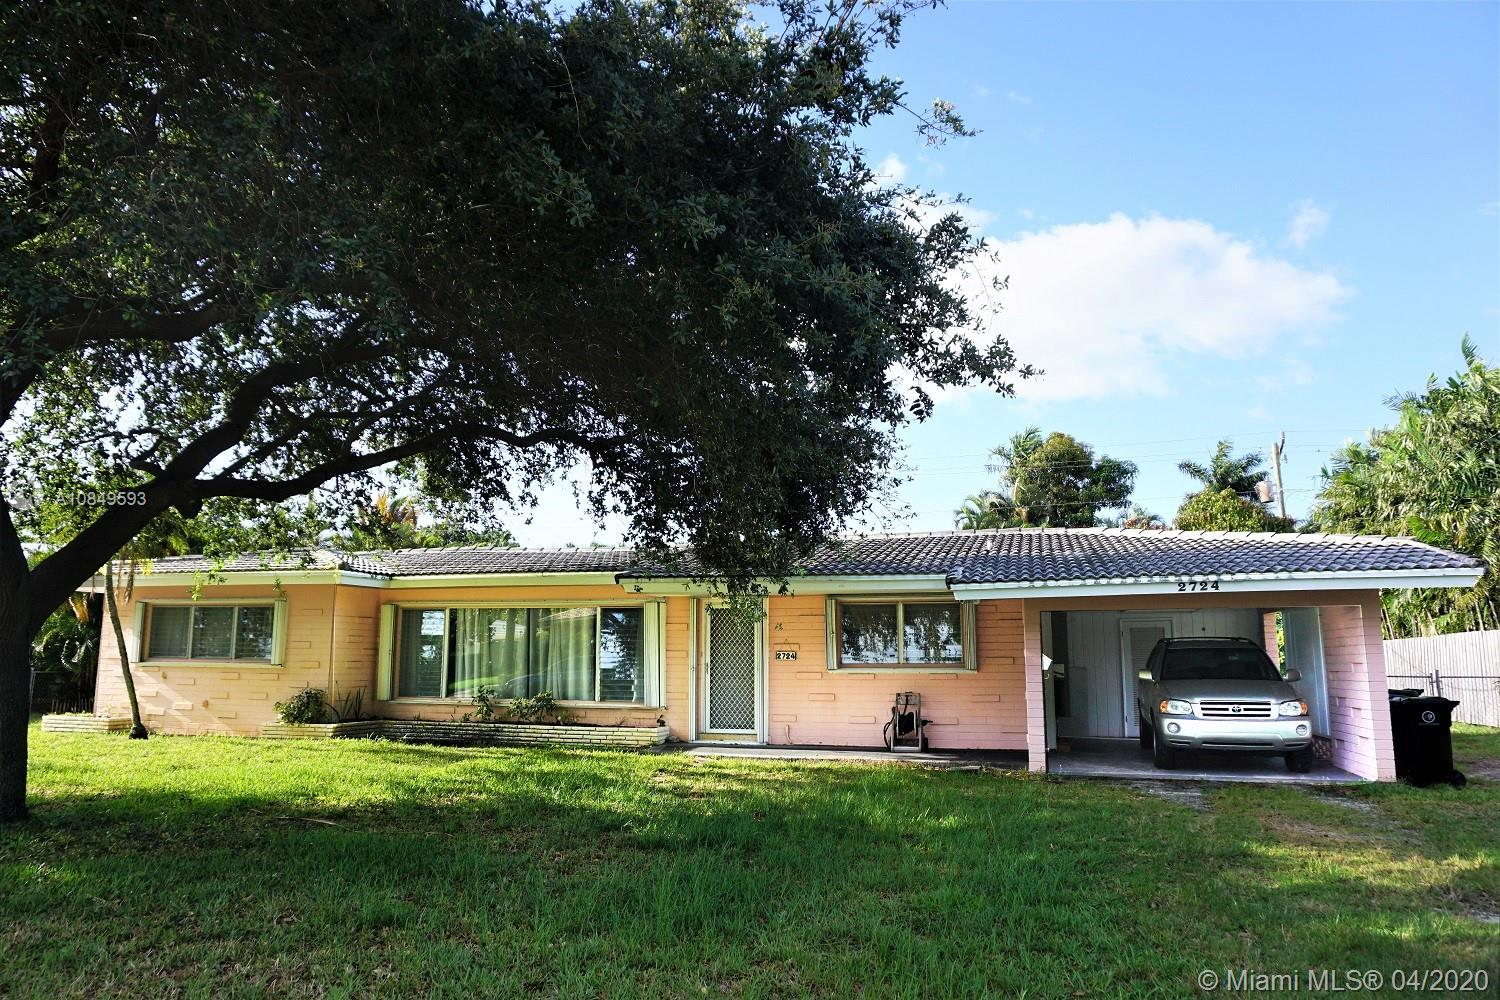 Great opportunity to own a home in Coral Ridge, one of Fort Lauderdale's most prestigious neighborhoods, with incredible potential. The property has a 504 sf family room under the main roof which can be enclosed and instantly add tremendous amount of space and VALUE! This is a Diamond in the Rough!The home features 2 bedroom, 2 bathrooms, open floor plan, vaulted ceilings, fenced back yard, 10,000+ lot, complete accordion shutter hurricane protection,  Residence is located in the Bayview Elementary school district, 1 mile from the famous Fort Lauderdale beach, walking distance to Fort Lauderdale's best restaurants, shopping and entertainment.